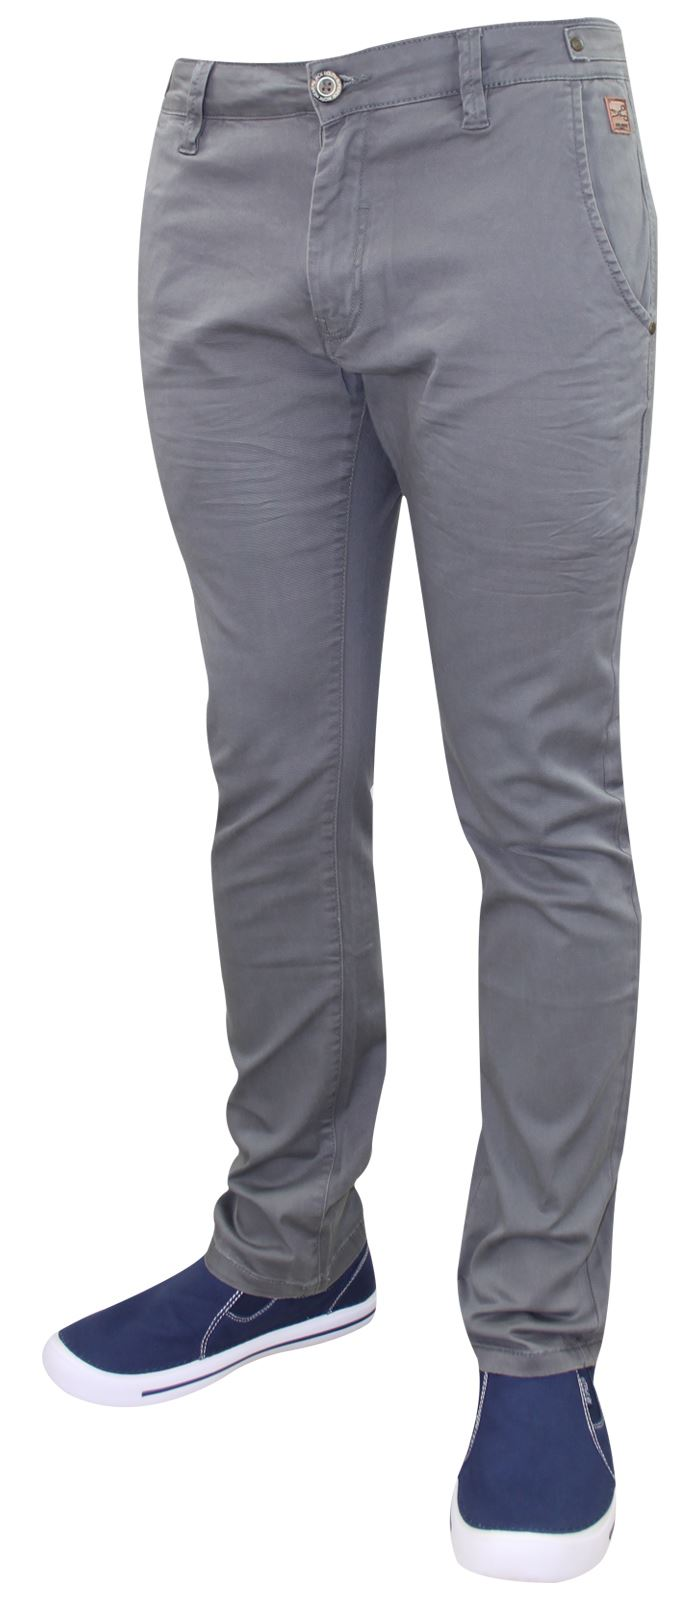 Men-Chinos-Trousers-Regular-Fit-Stretch-Cotton-Jeans-Pants-All-Waist-Sizes thumbnail 7